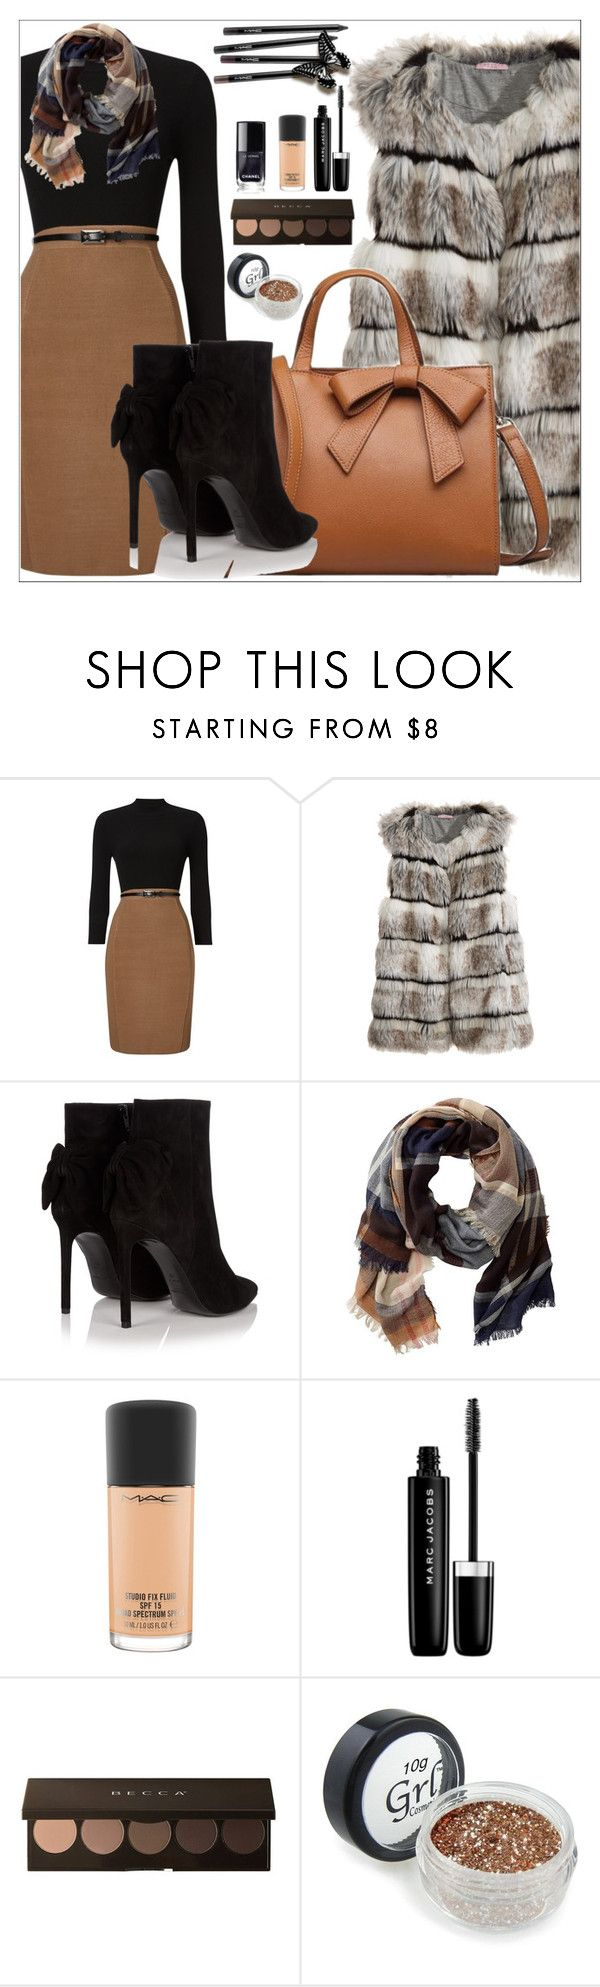 """WARM WINTER"" by nickooe-zhou ❤ liked on Polyvore featuring Phase Eight, Calypso St. Barth, Yves Saint Laurent, TravelSmith, MAC Cosmetics and Marc Jacobs"